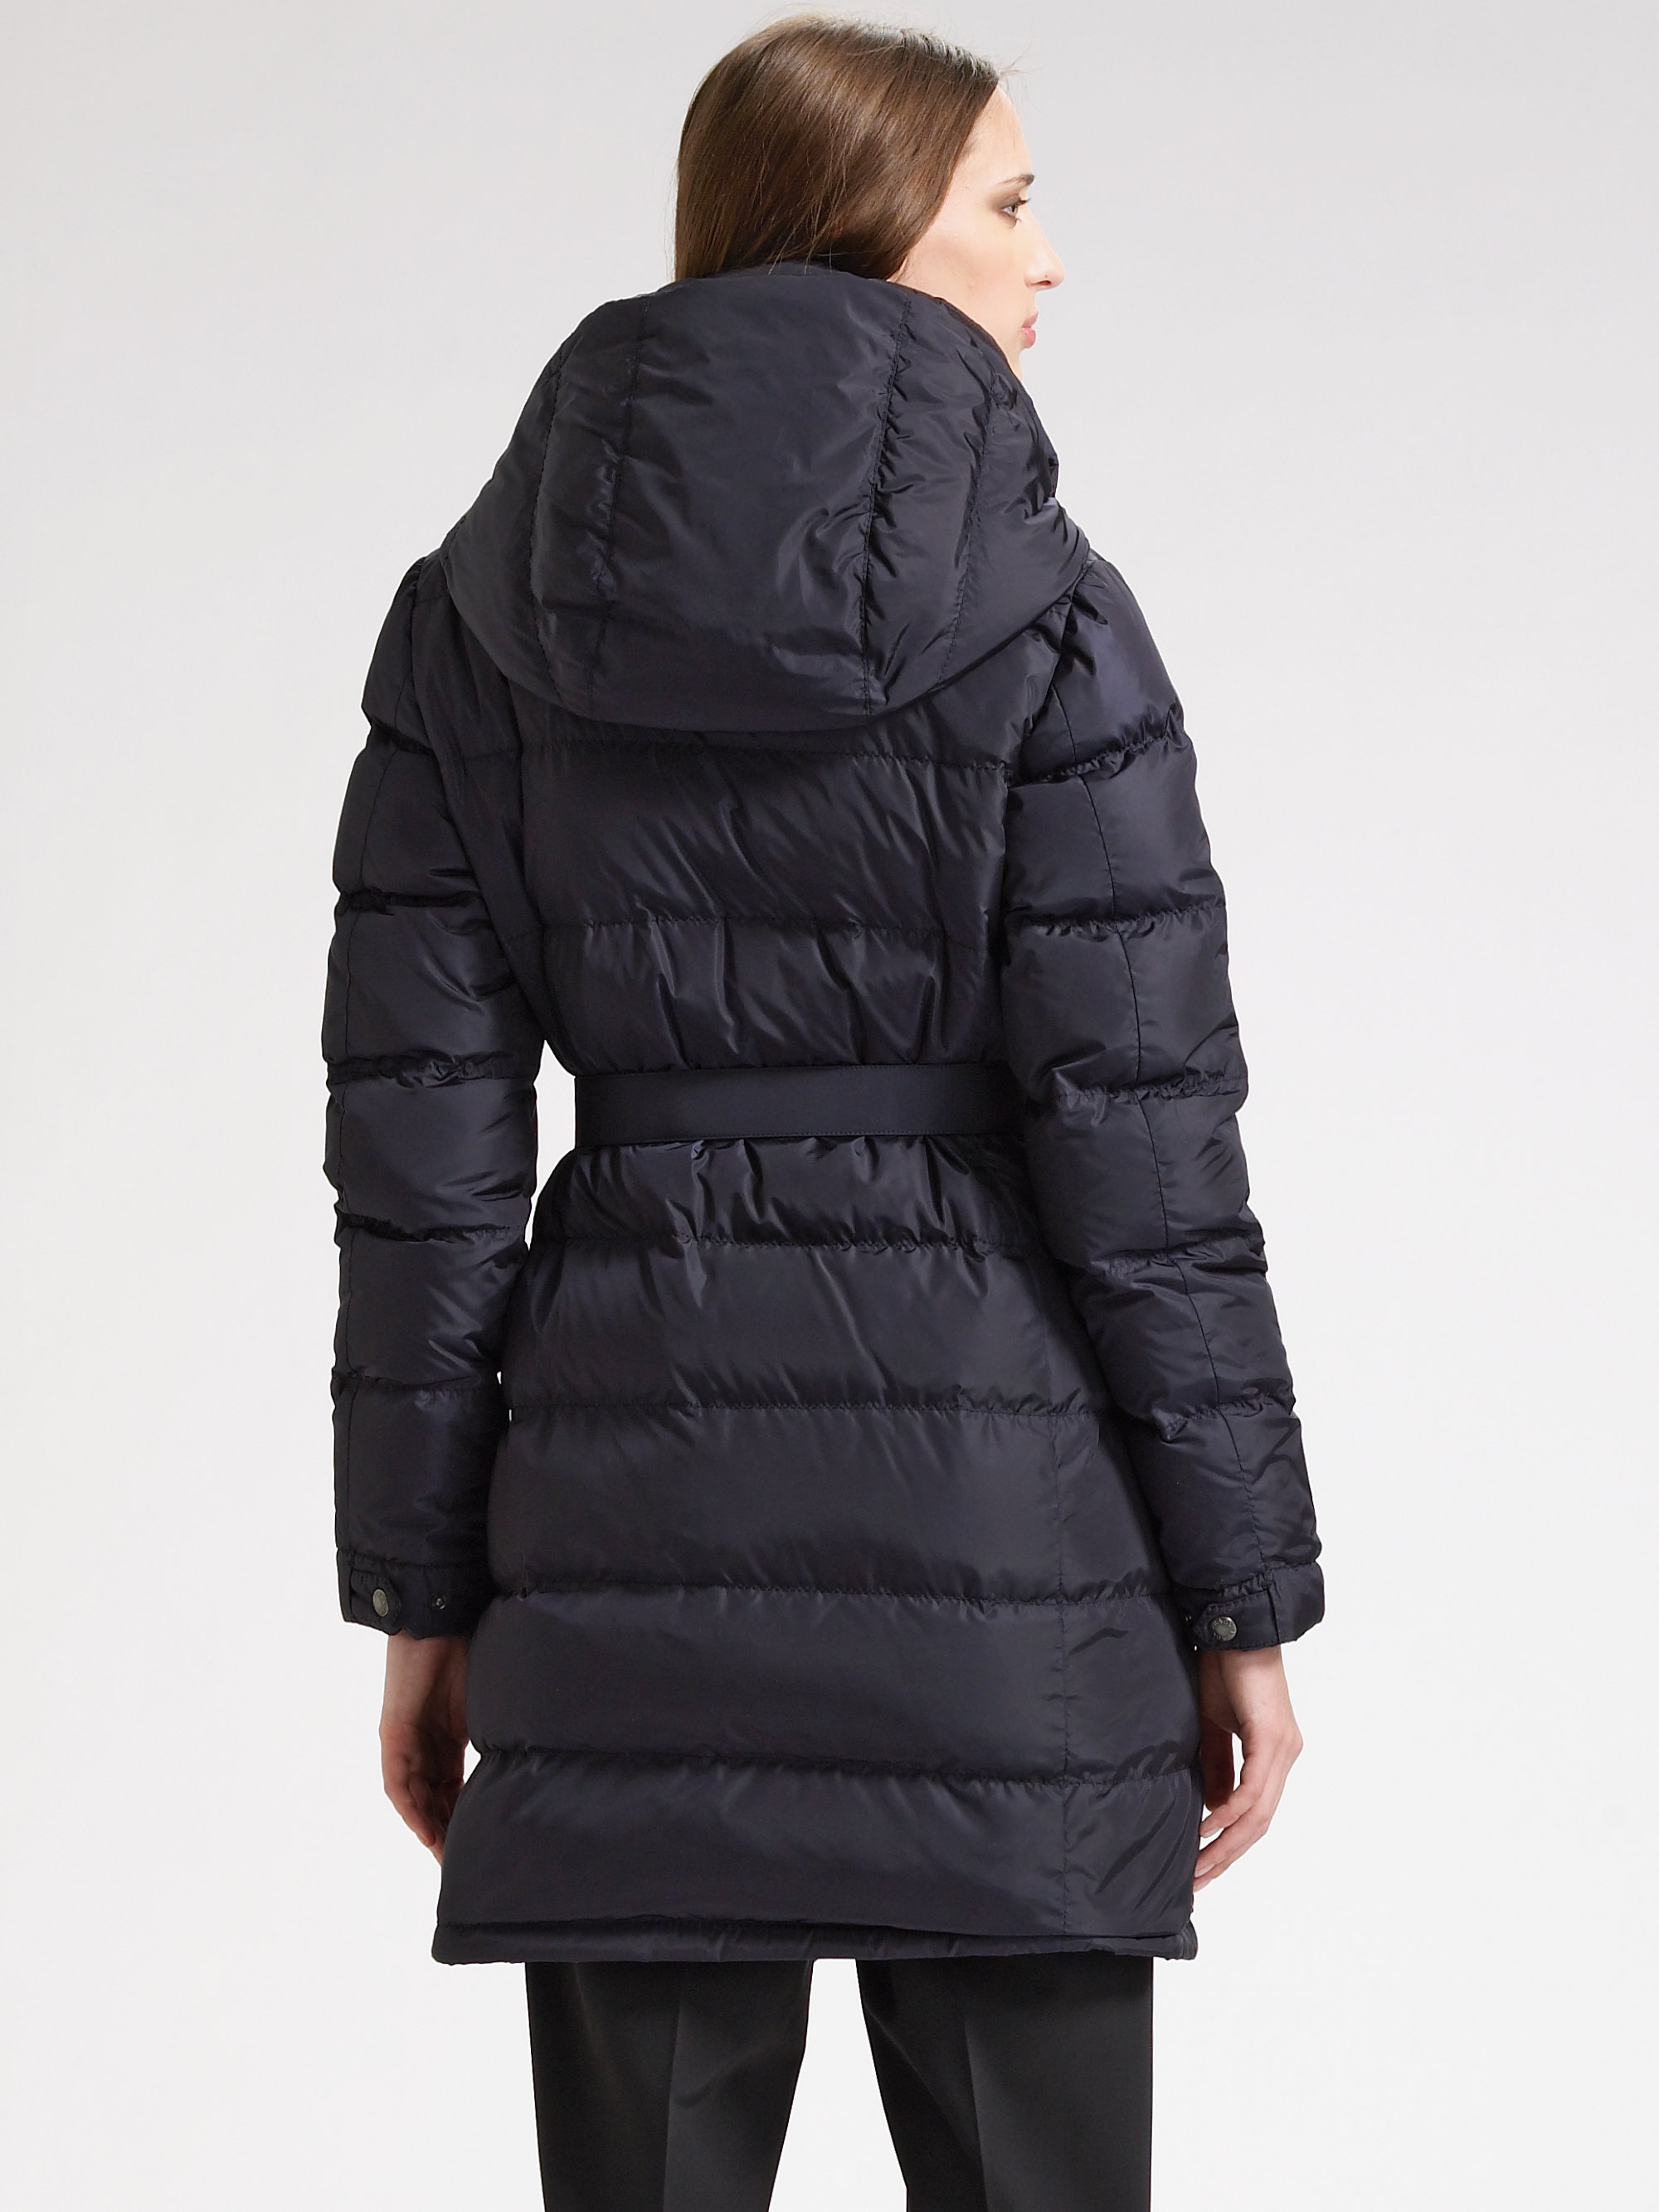 Prada Quilted Belted Down Jacket In Blue Lyst